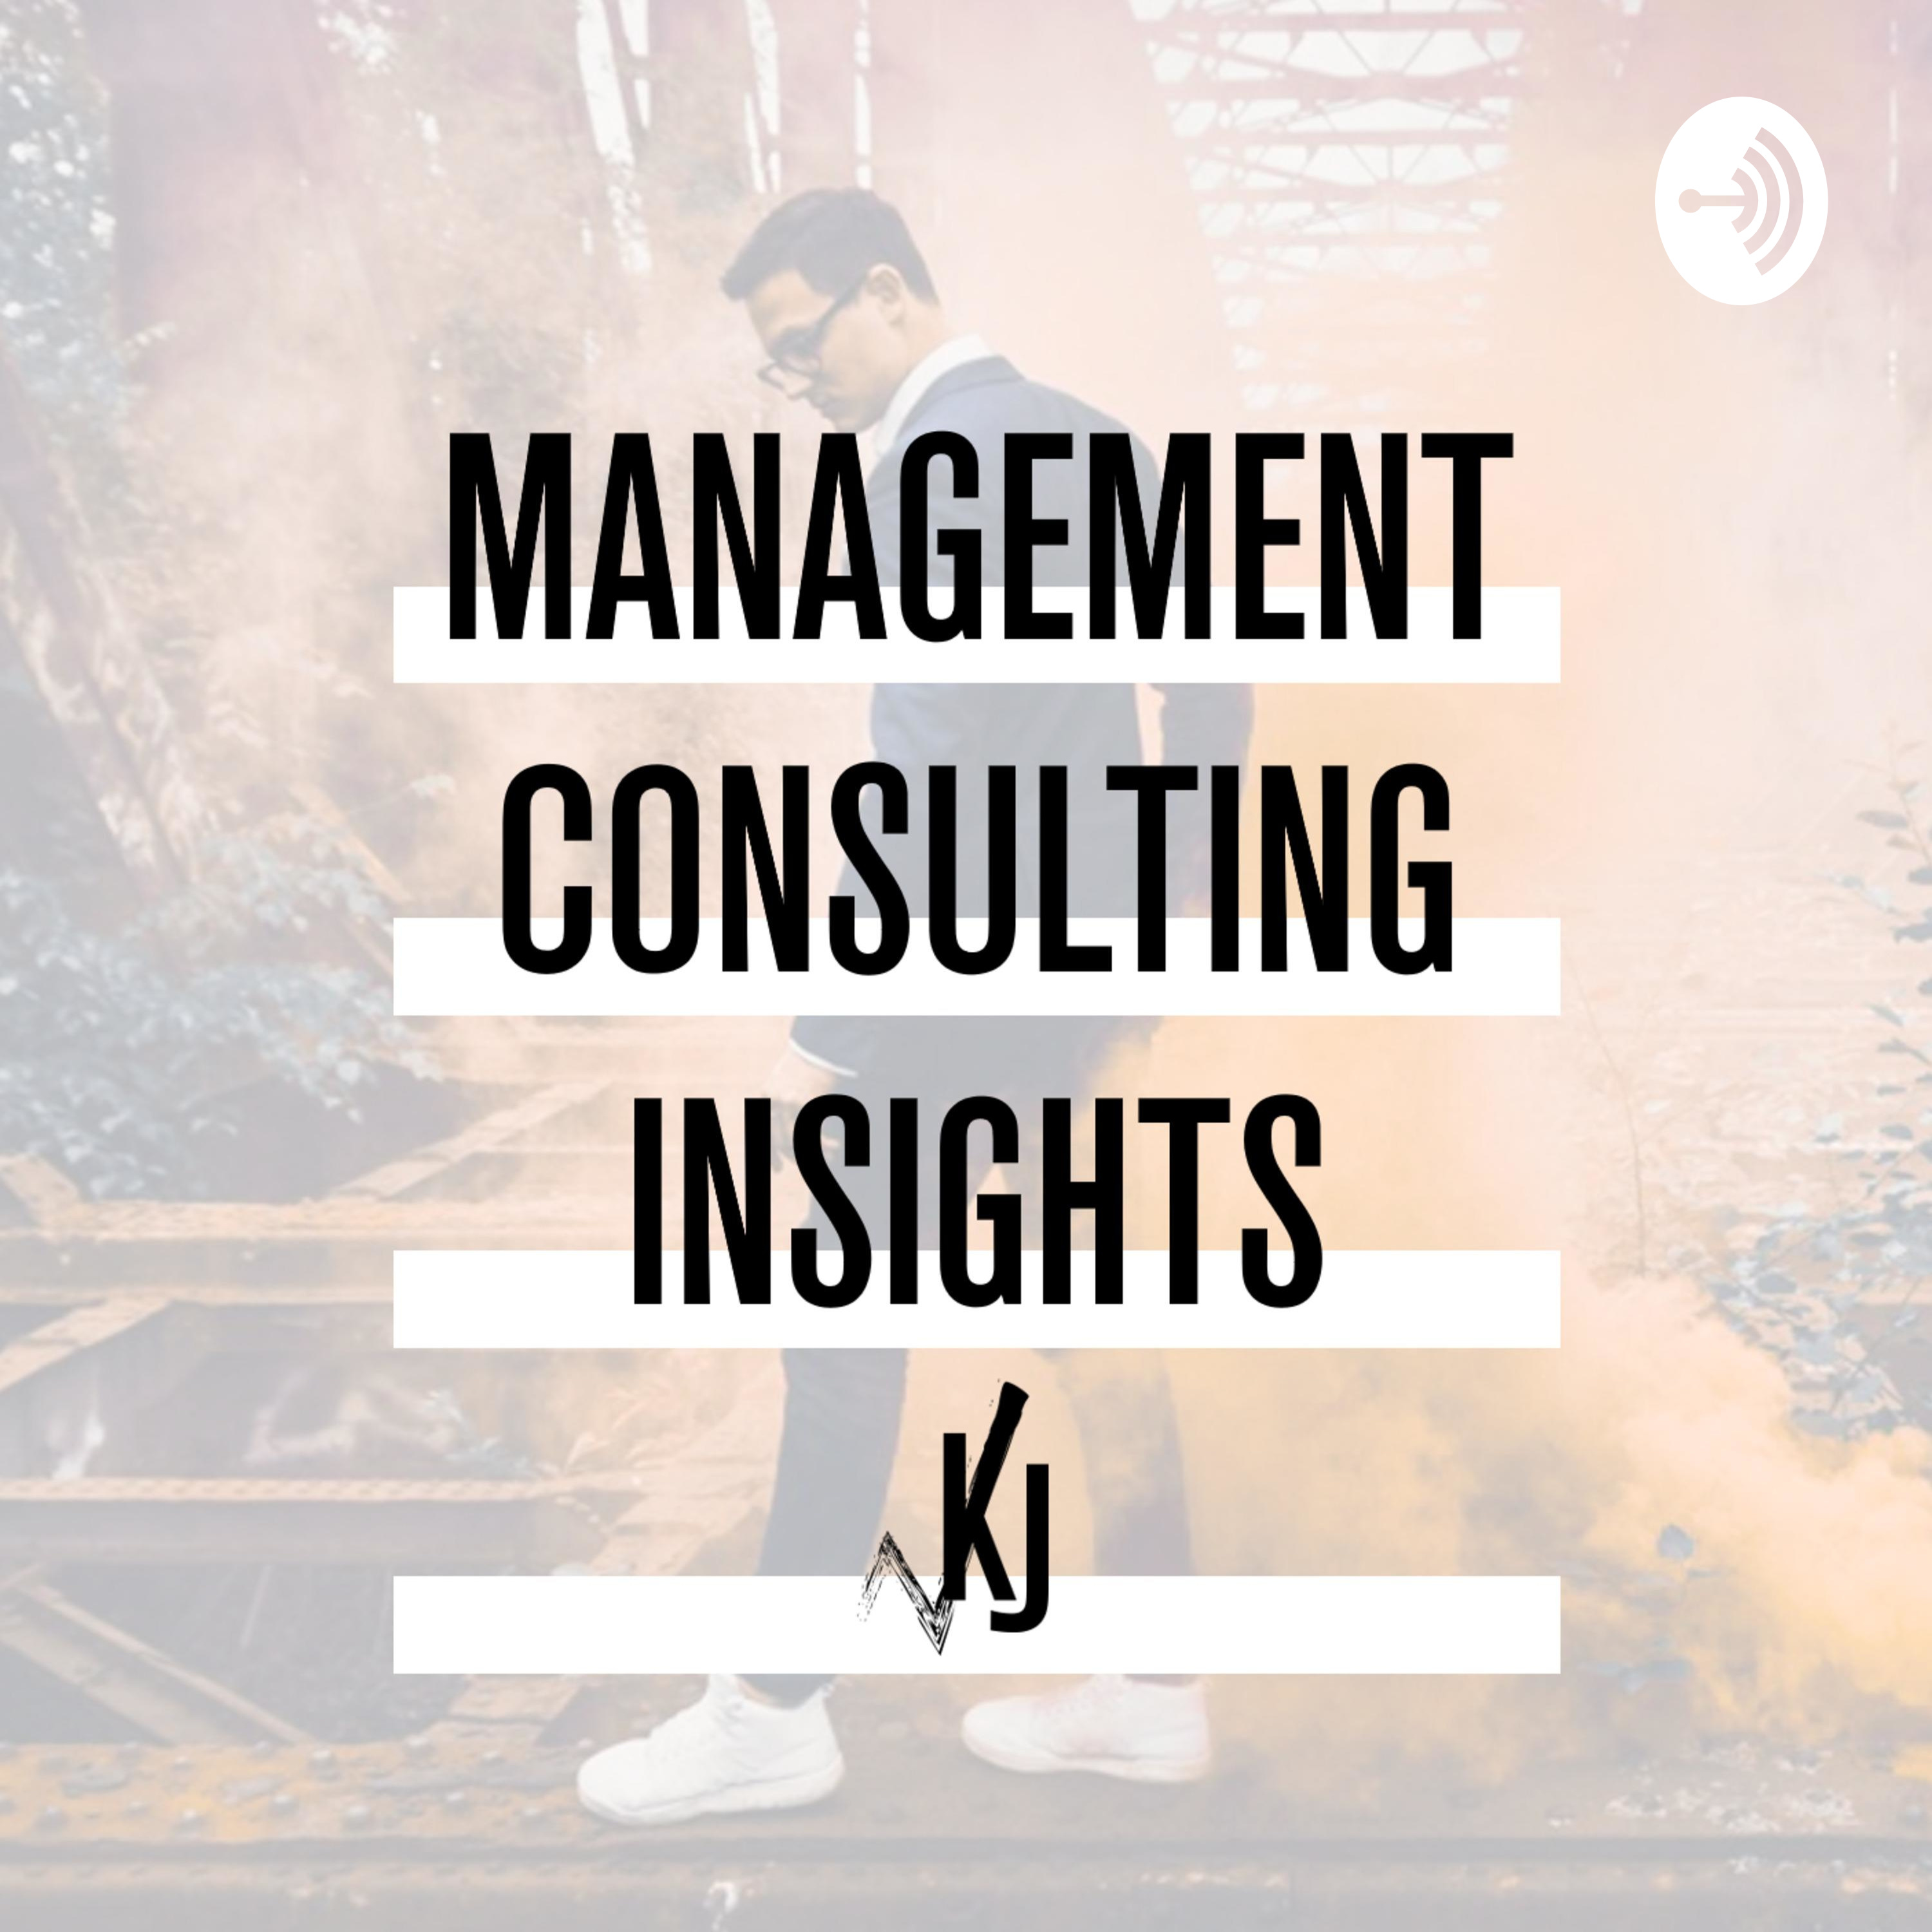 Boutique consulting vs large management consulting firms